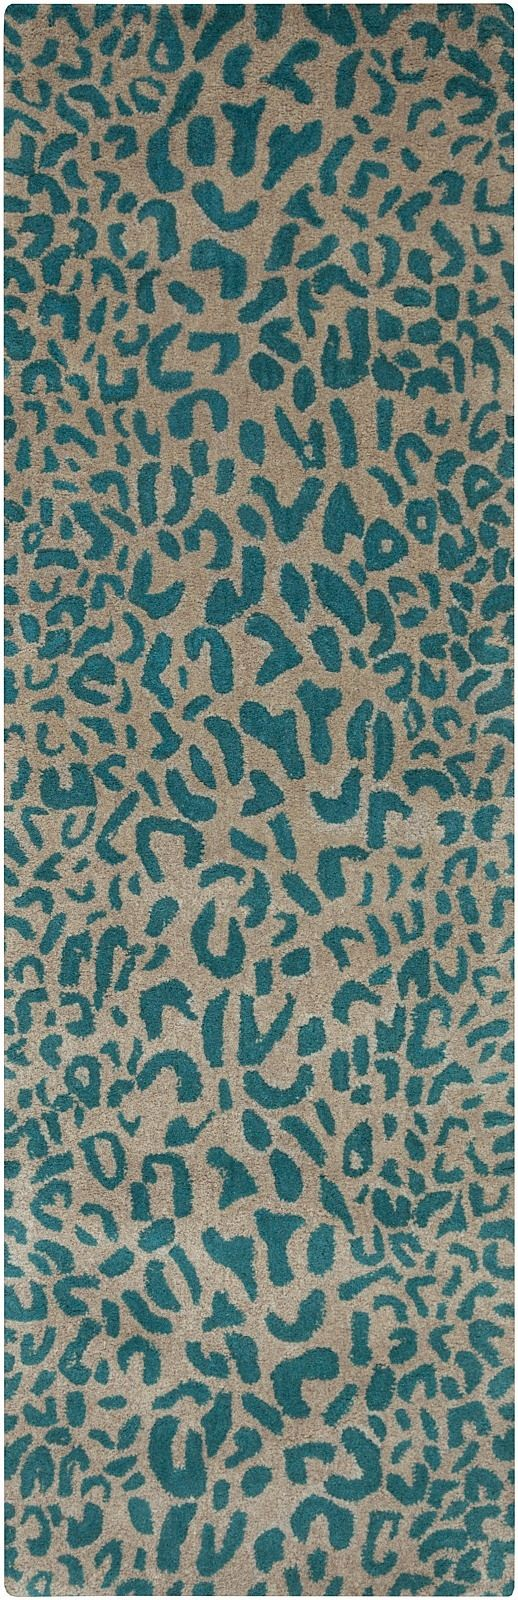 surya athena animal inspirations area rug collection